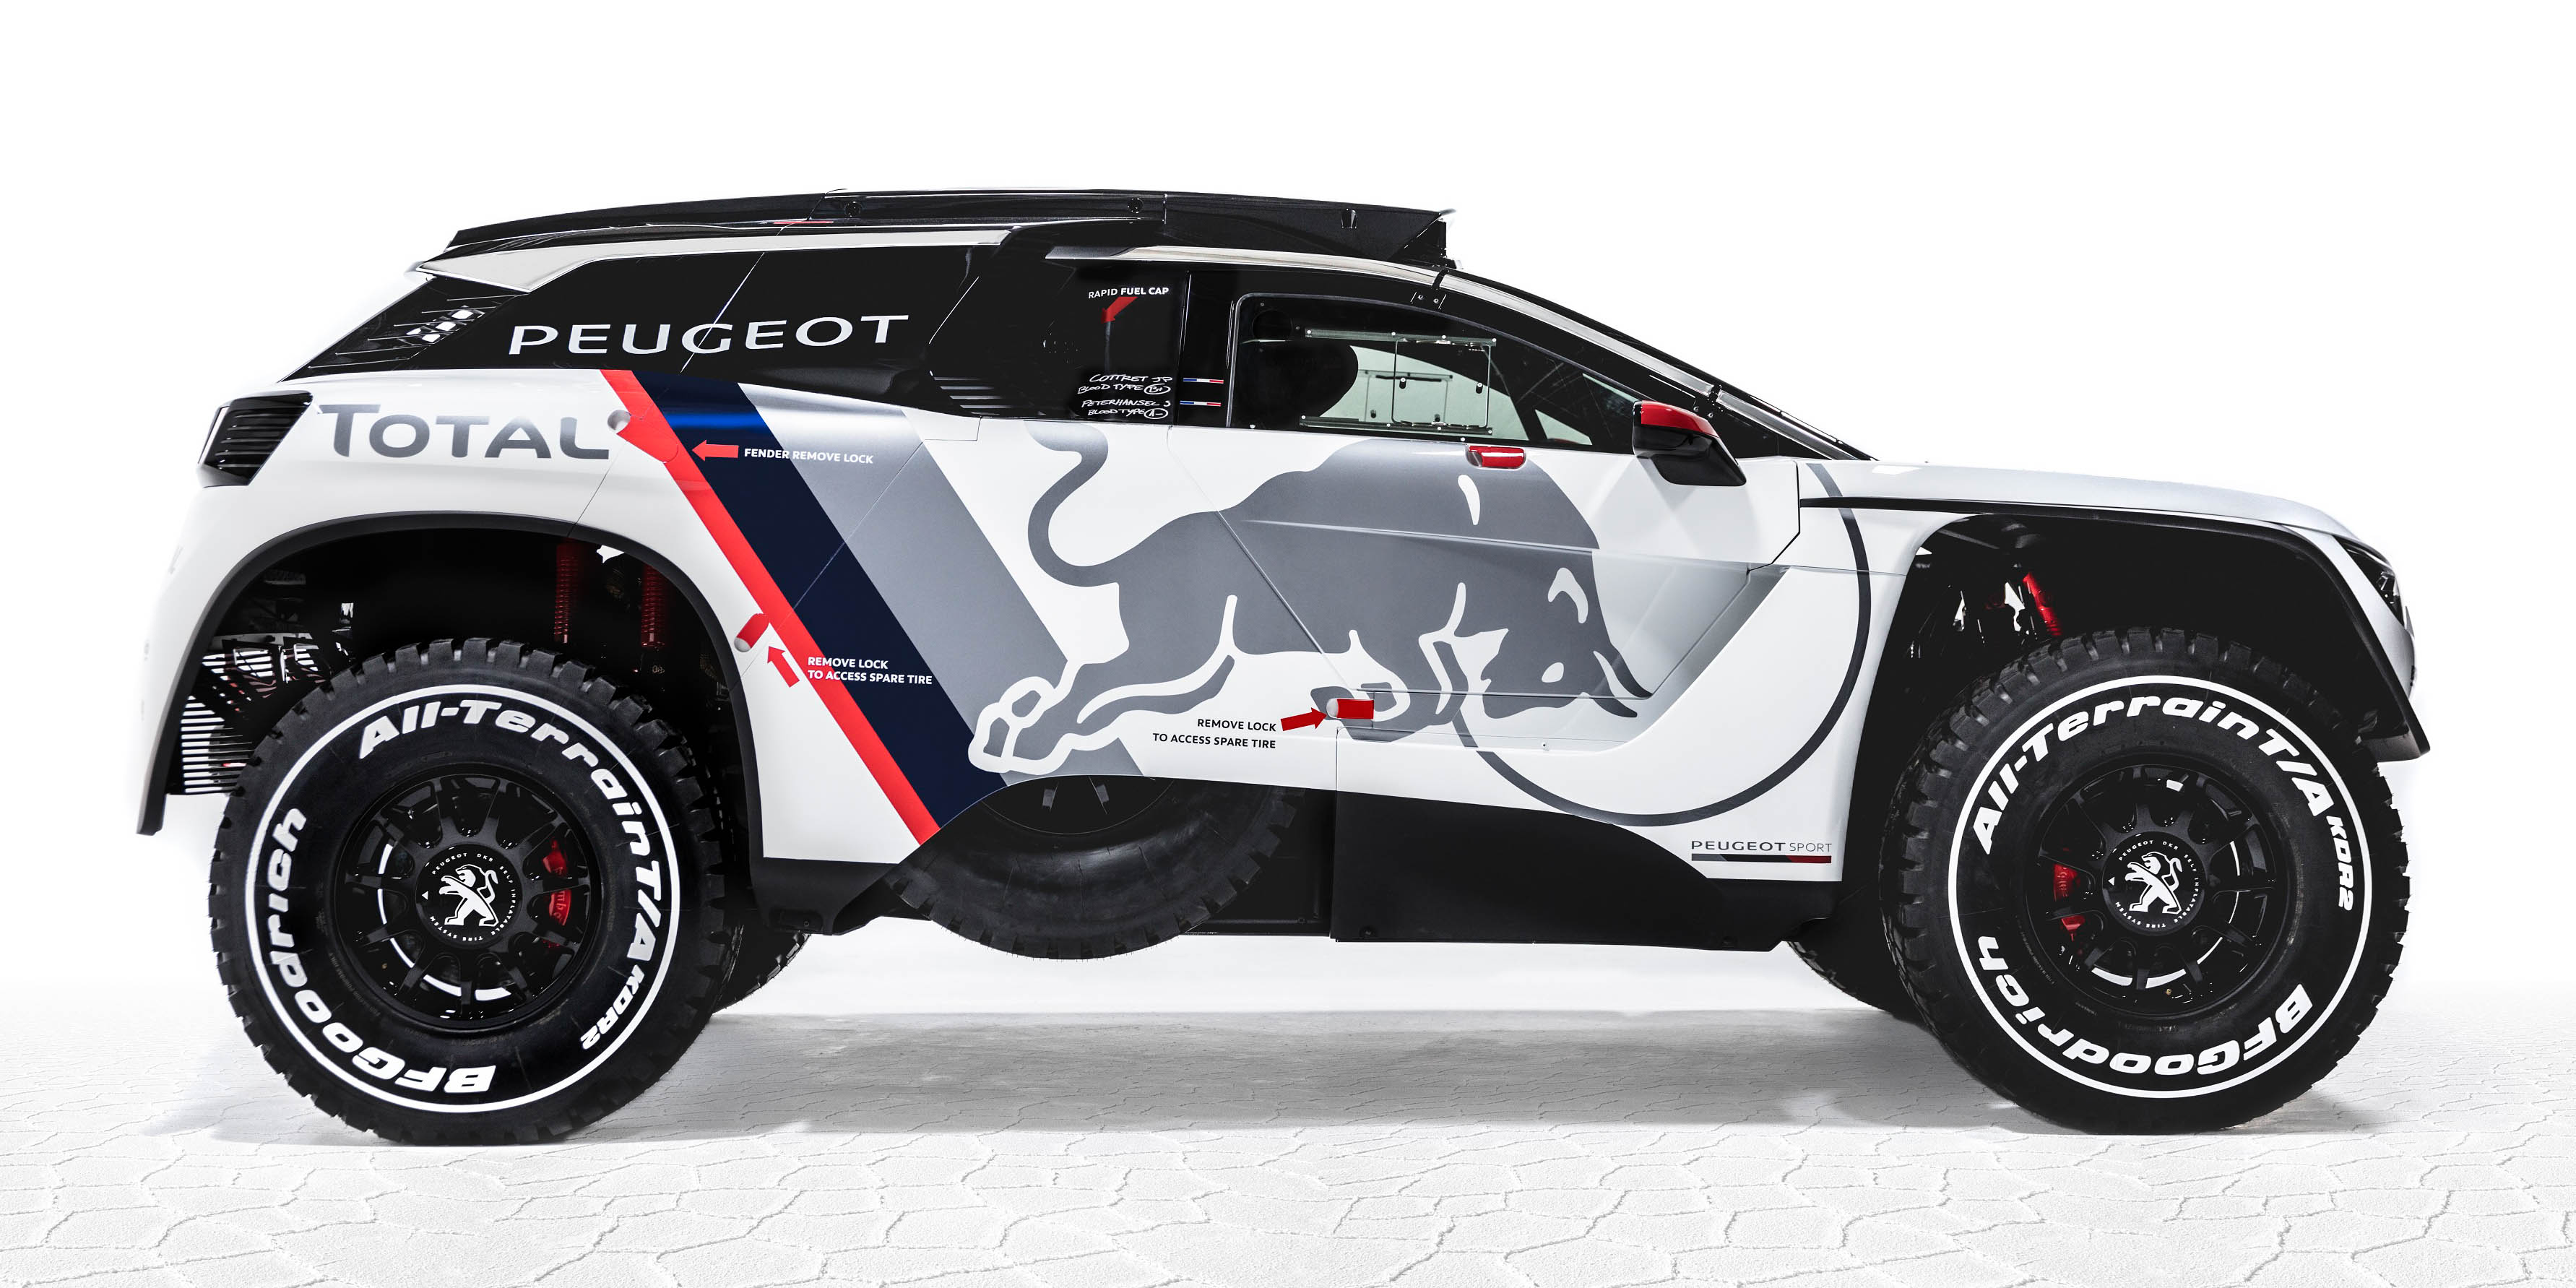 2017 peugeot 3008 dkr twin turbo rear drive suv revealed for 2017 dakar rally photos 1 of 8. Black Bedroom Furniture Sets. Home Design Ideas